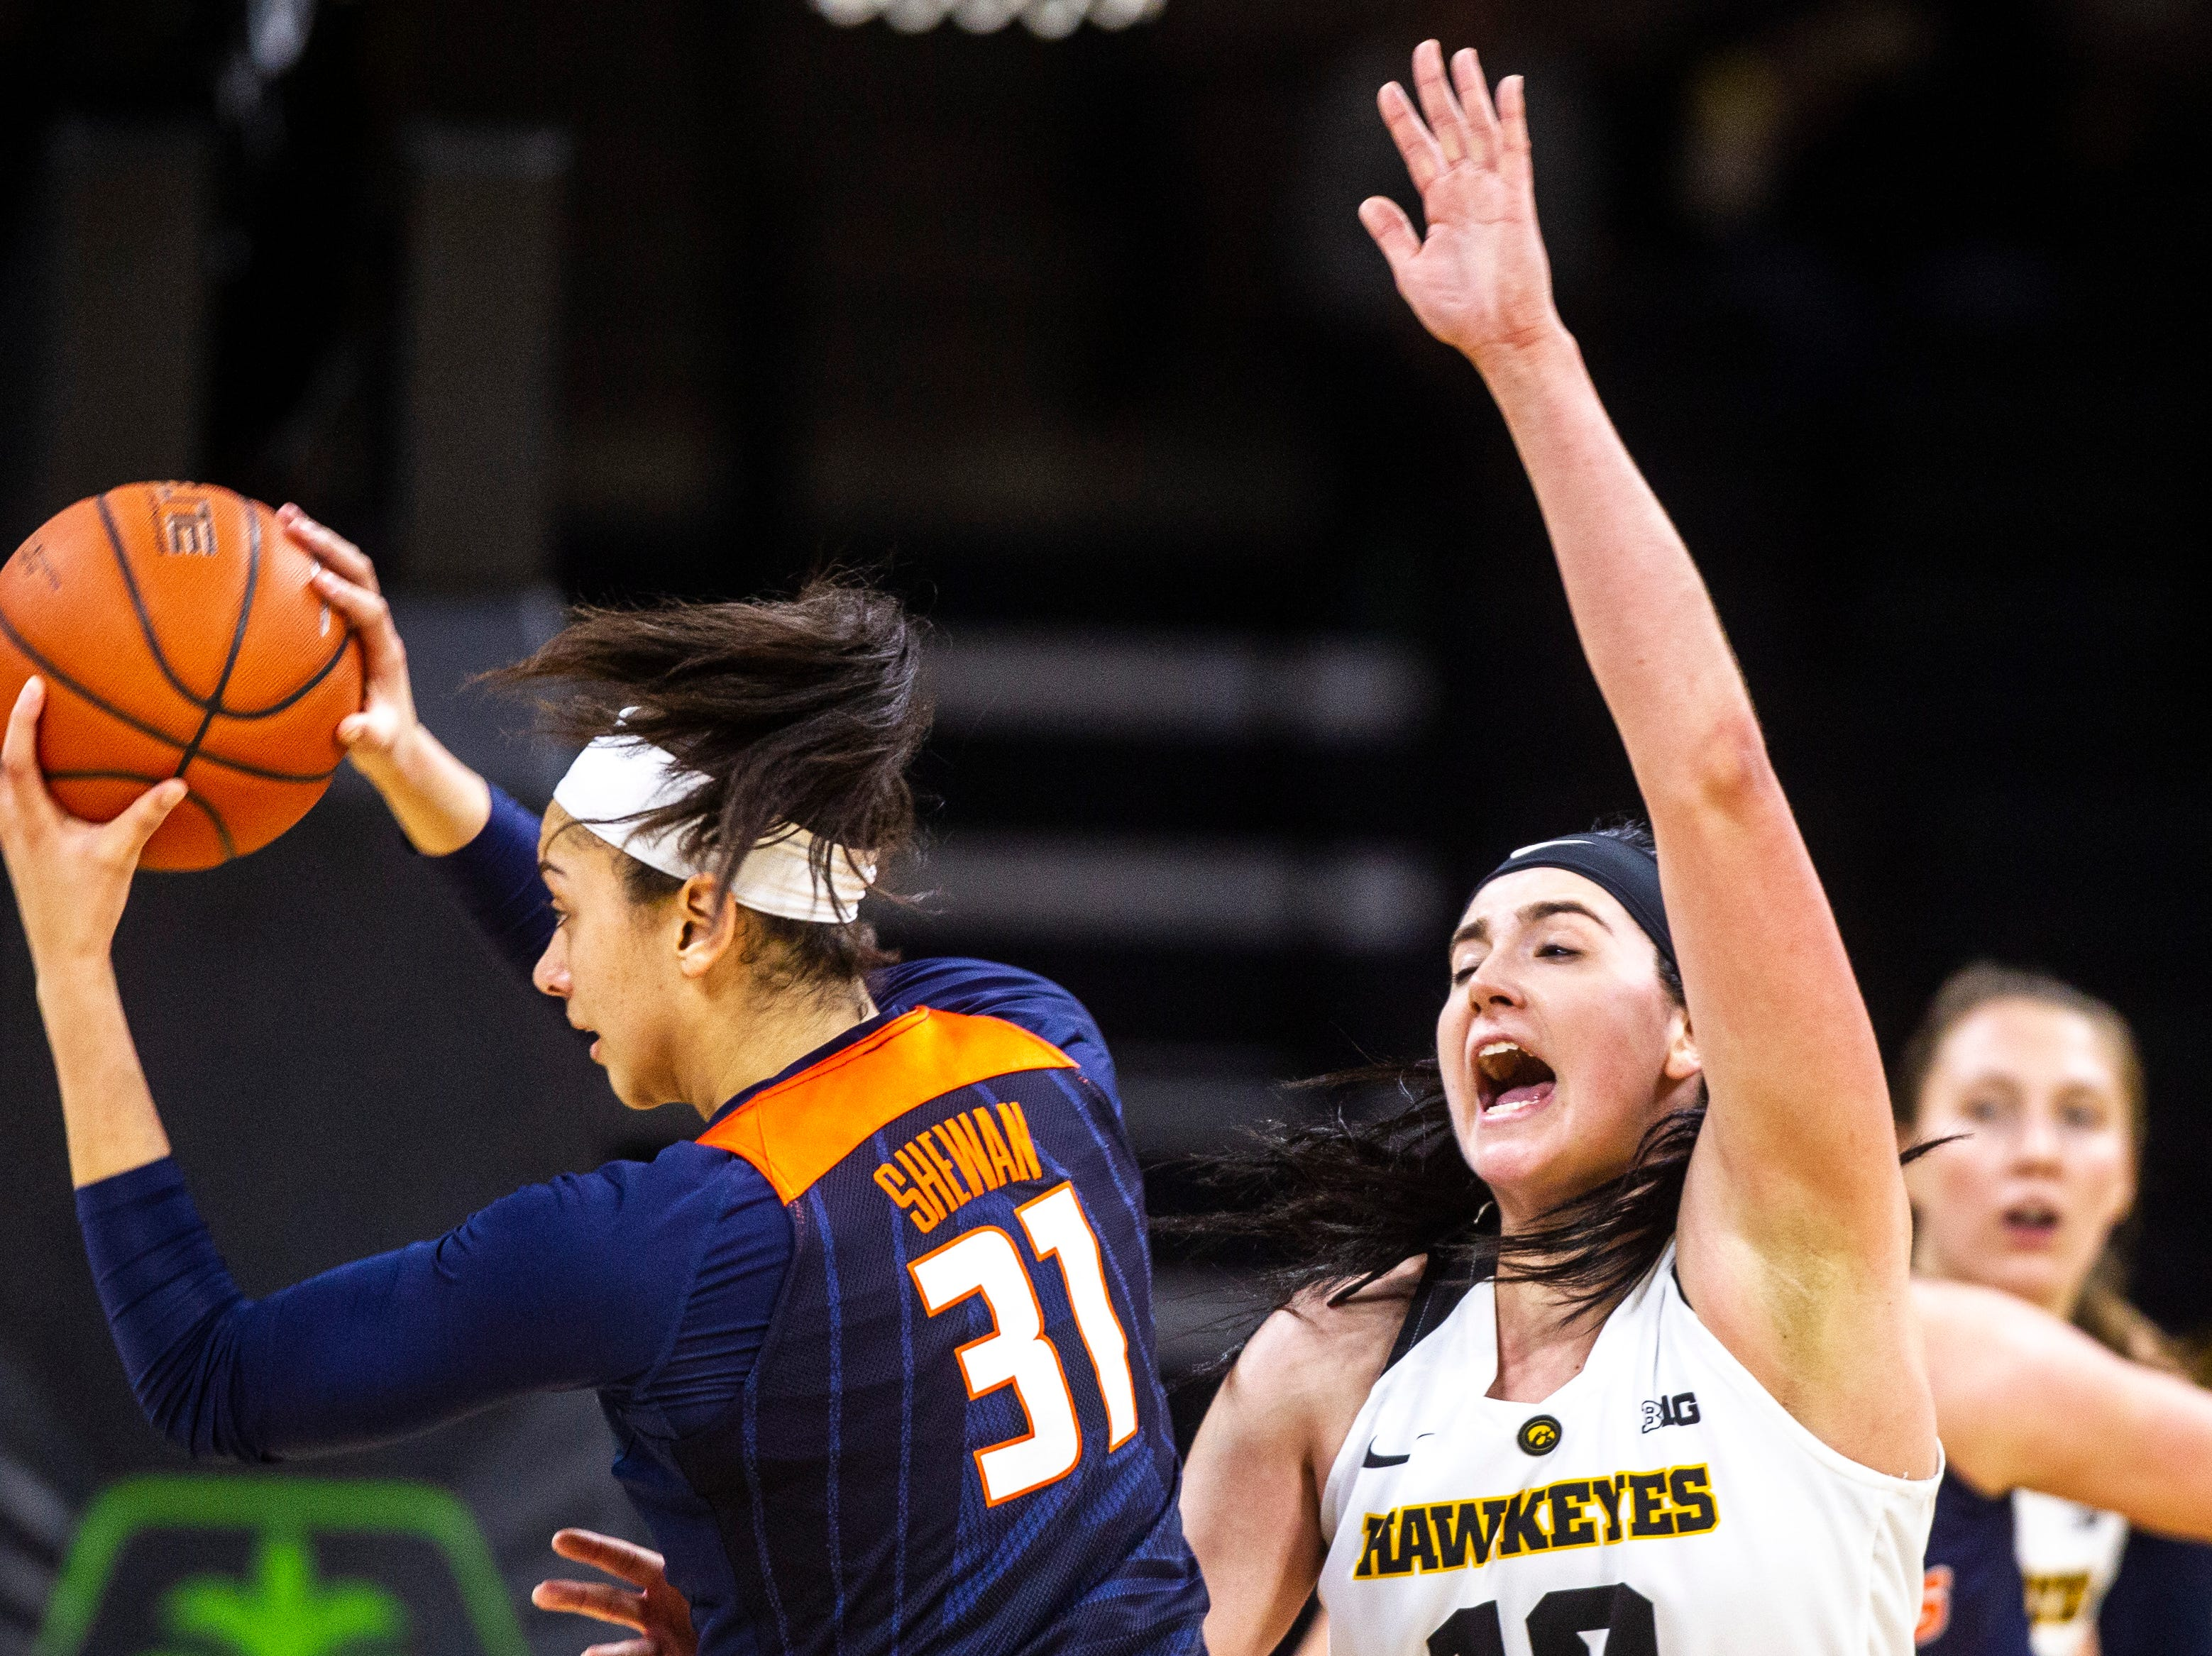 Illinois forward Sarah Shewan (31) drives to the basket while Iowa center Megan Gustafson, right, defends during a NCAA Big Ten Conference women's basketball game on Thursday, Feb. 14, 2019 at Carver-Hawkeye Arena in Iowa City, Iowa.